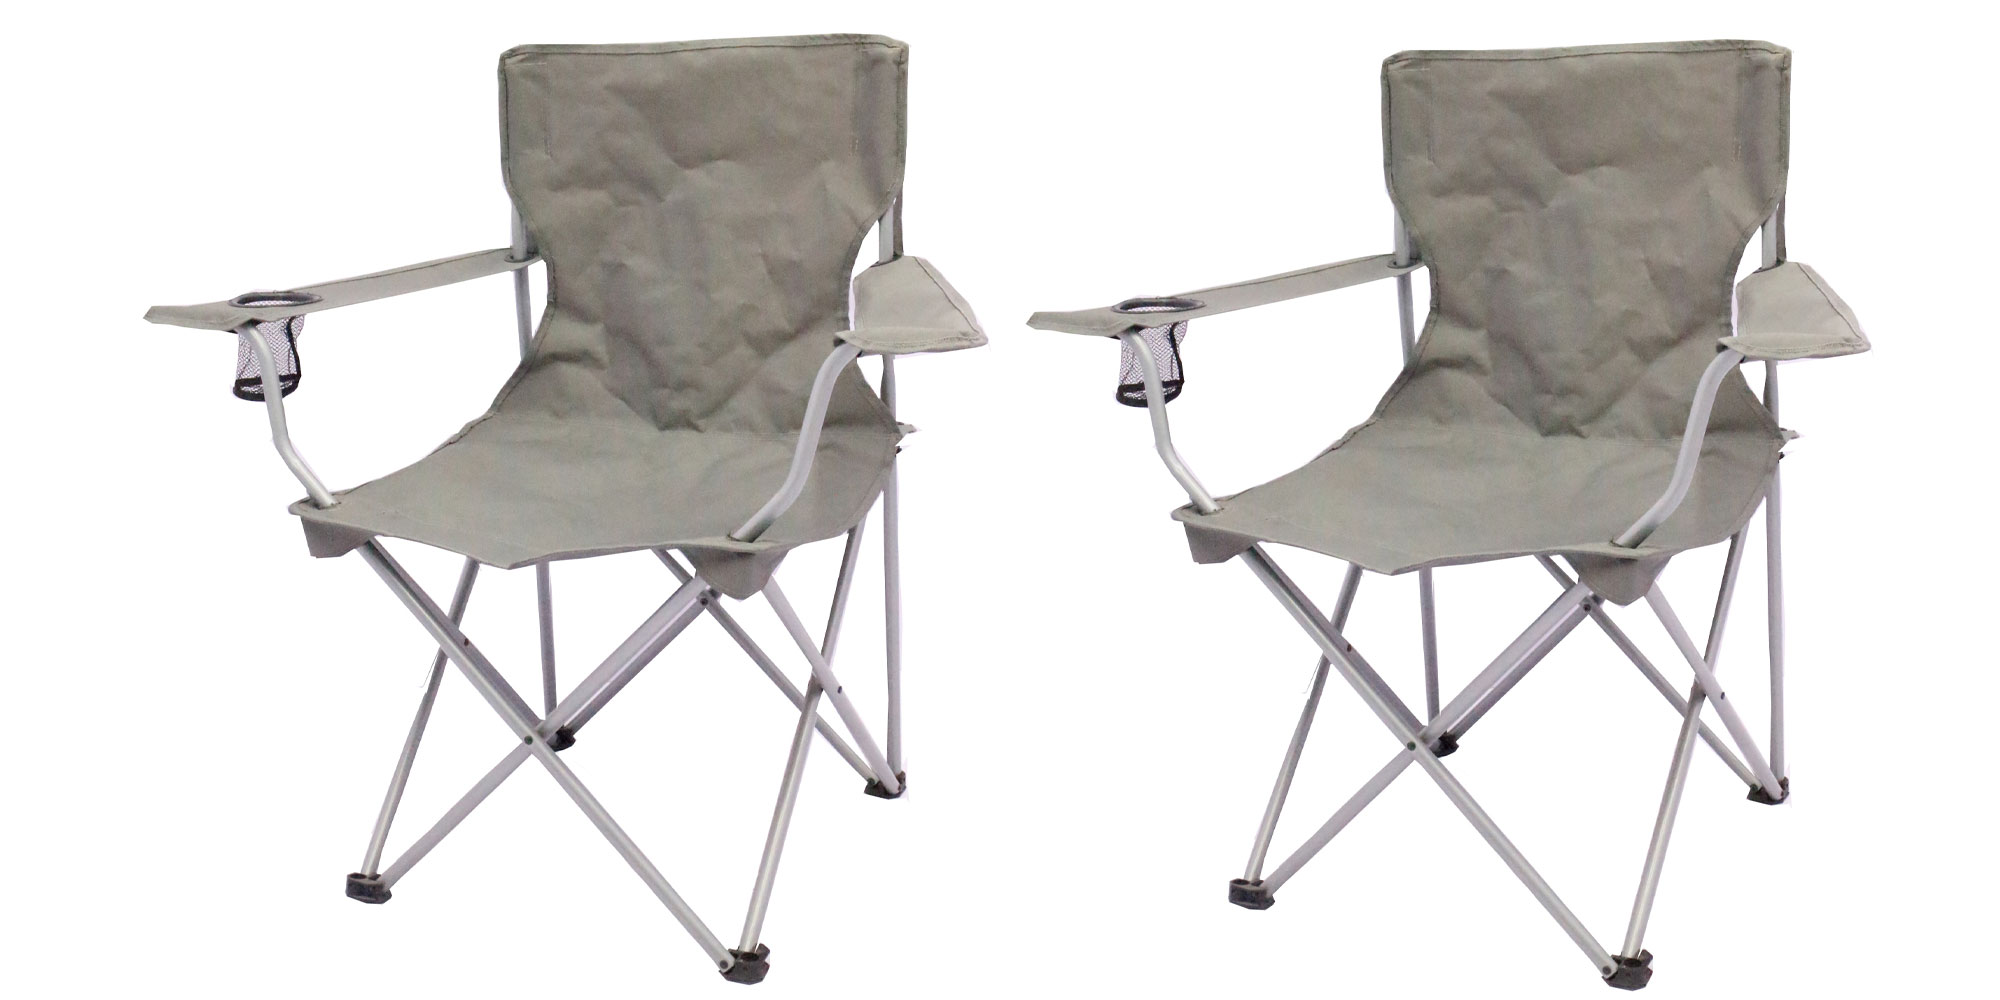 Camp Out With Two Ozark Trail Folding Lawn Chairs For $11 At Walmart